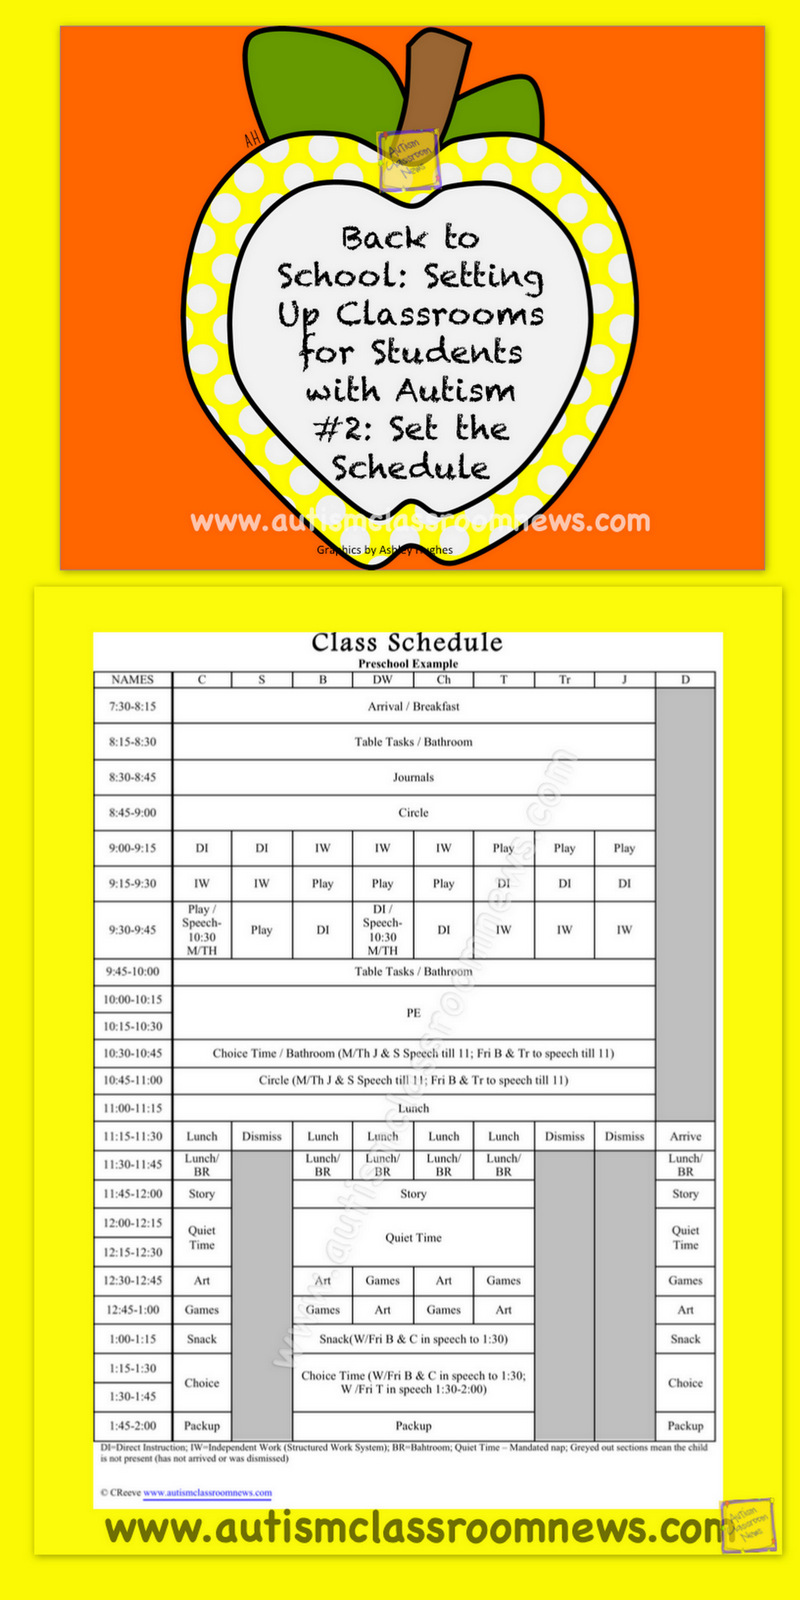 special education schedule template - autism classroom news back to school setting up